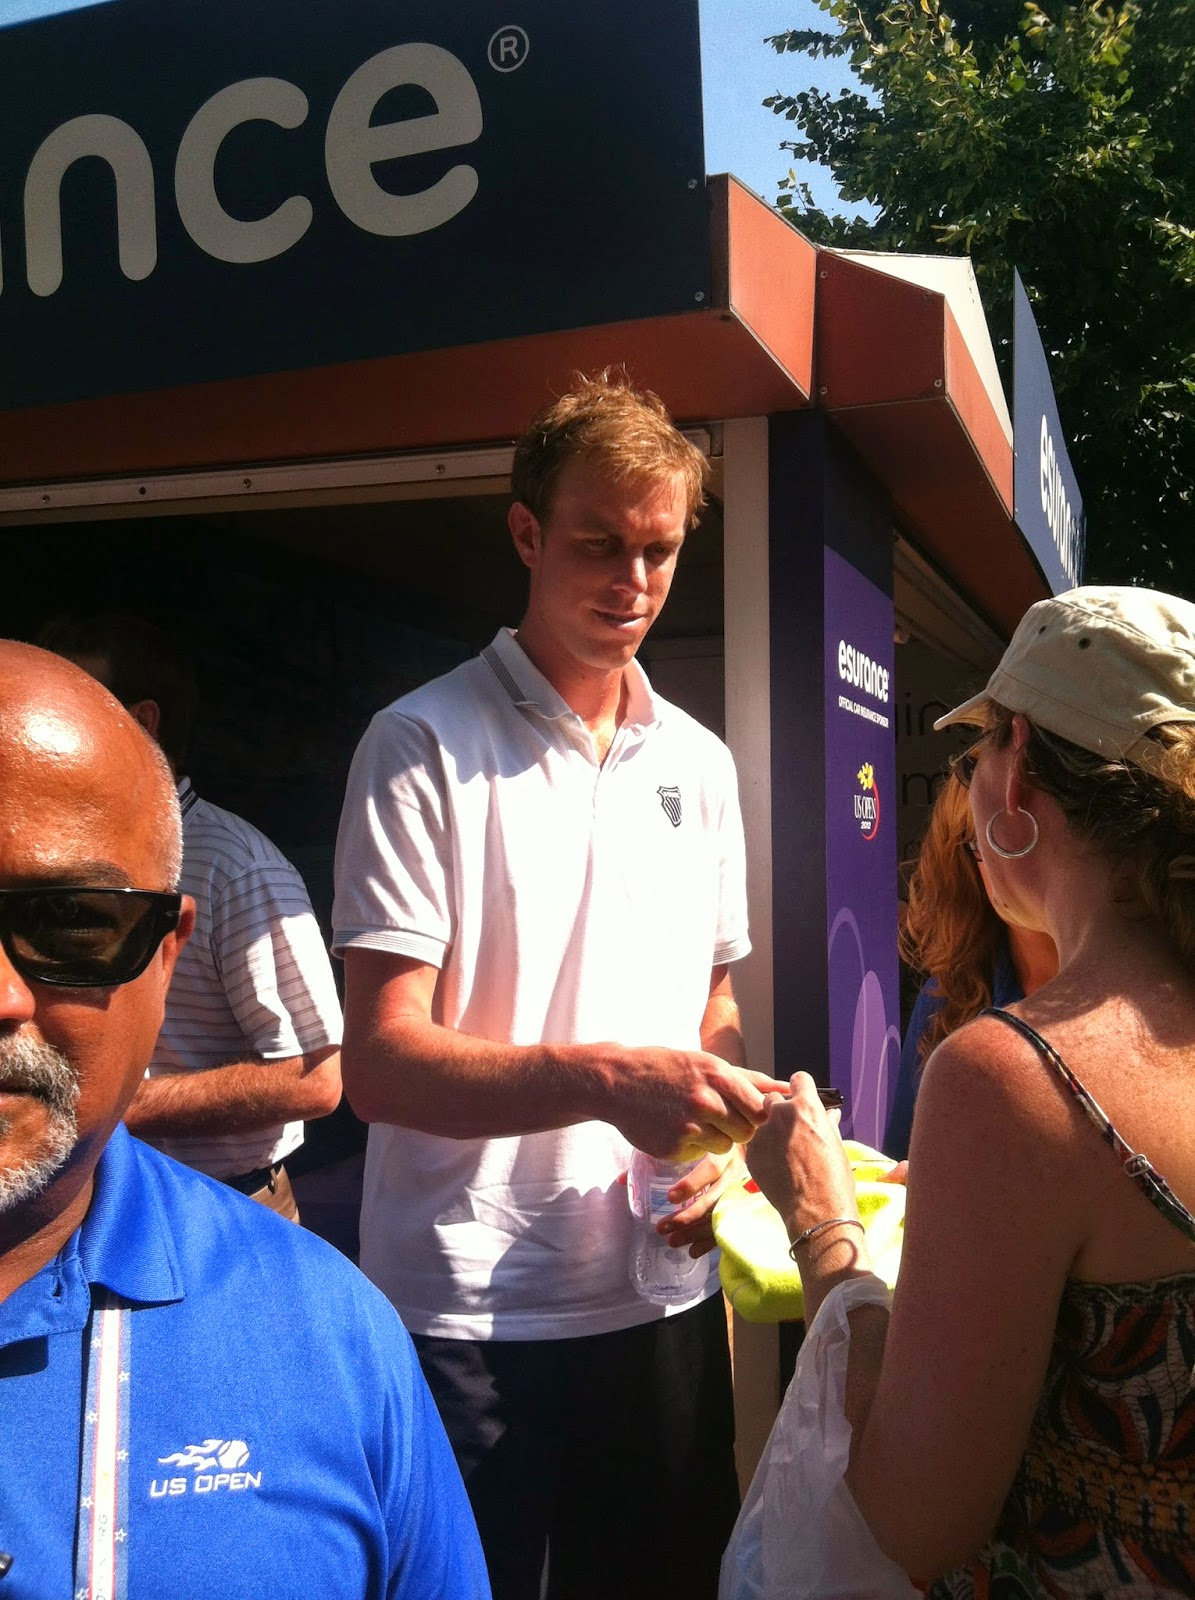 Sam Querrey at the 2012 US Open